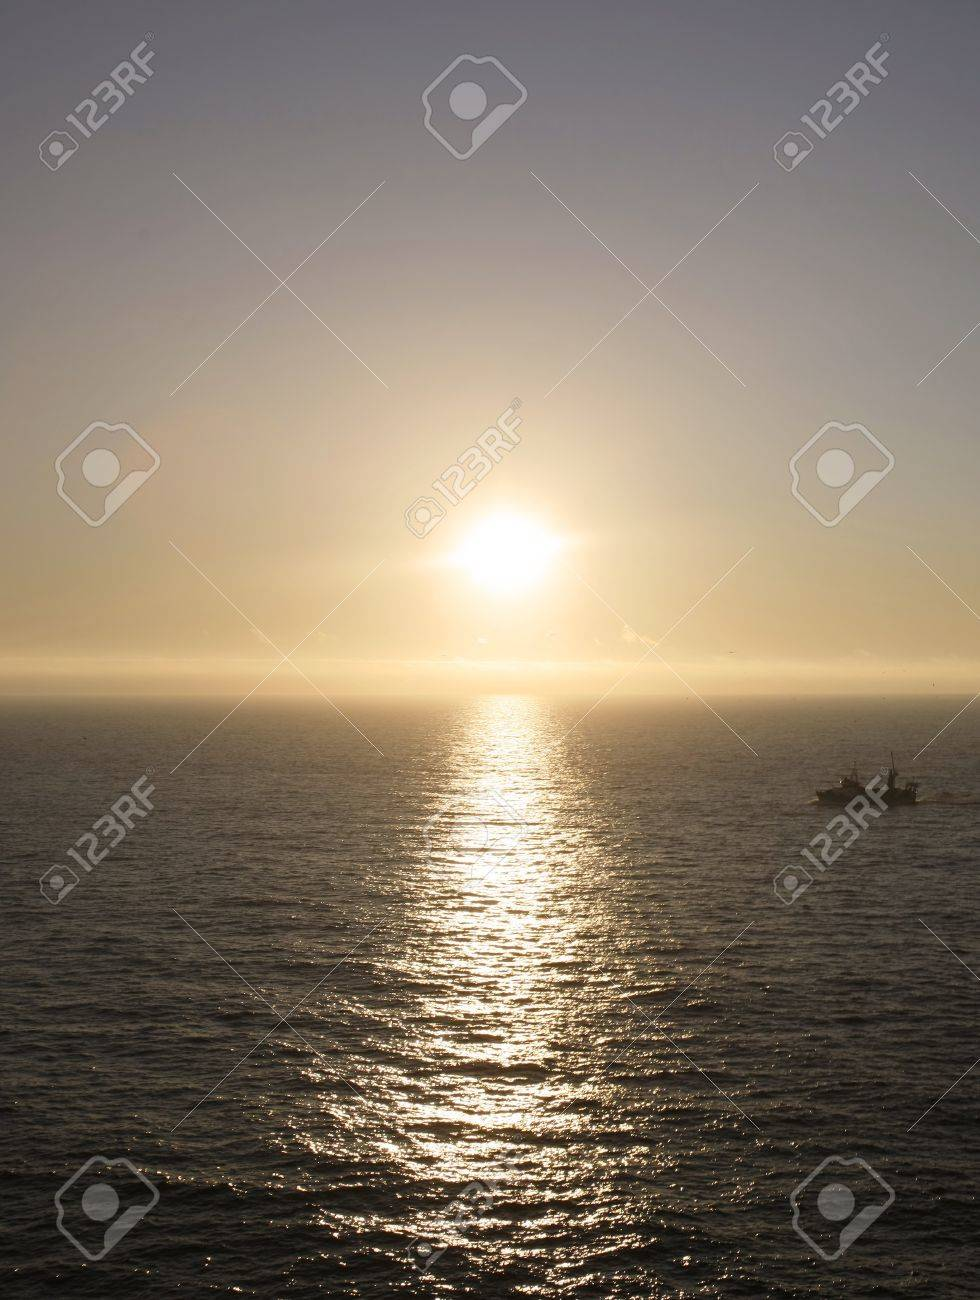 fishing boat with seagulls at sunset Stock Photo - 7140260